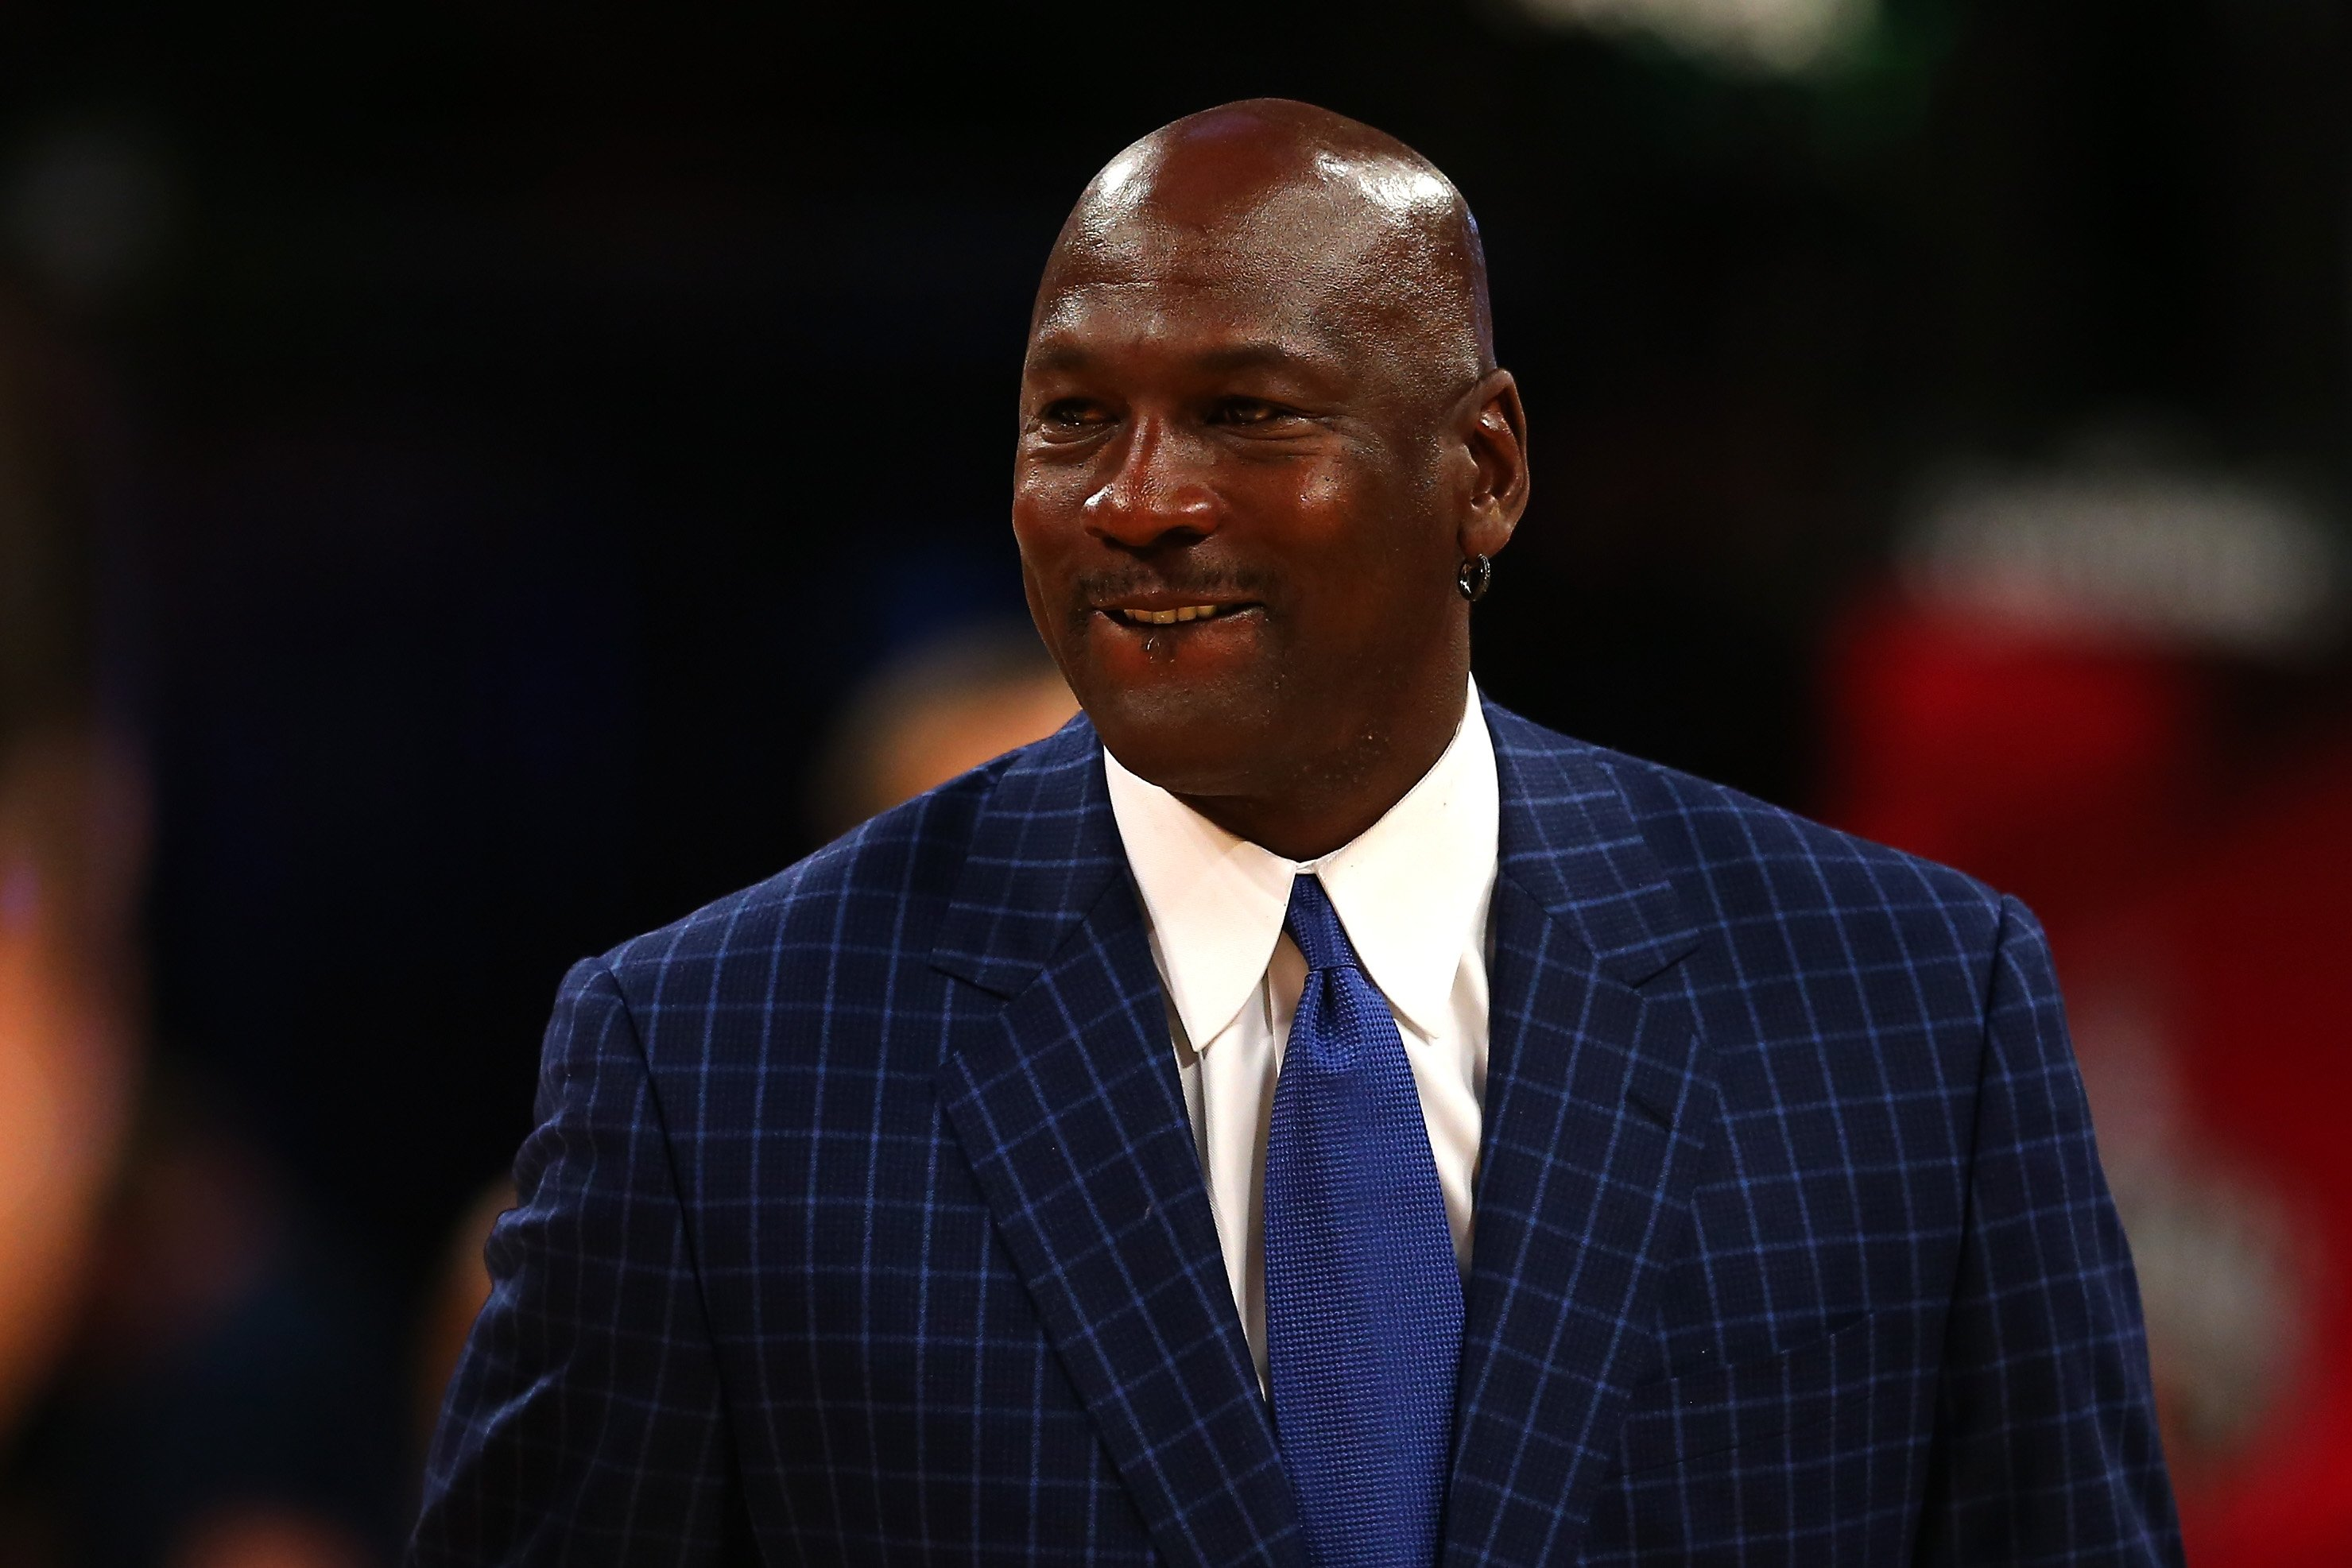 Michael Jordan during the NBA All-Star Game 2016 at the Air Canada Centre on February 14, 2016 | Photo: GettyImages